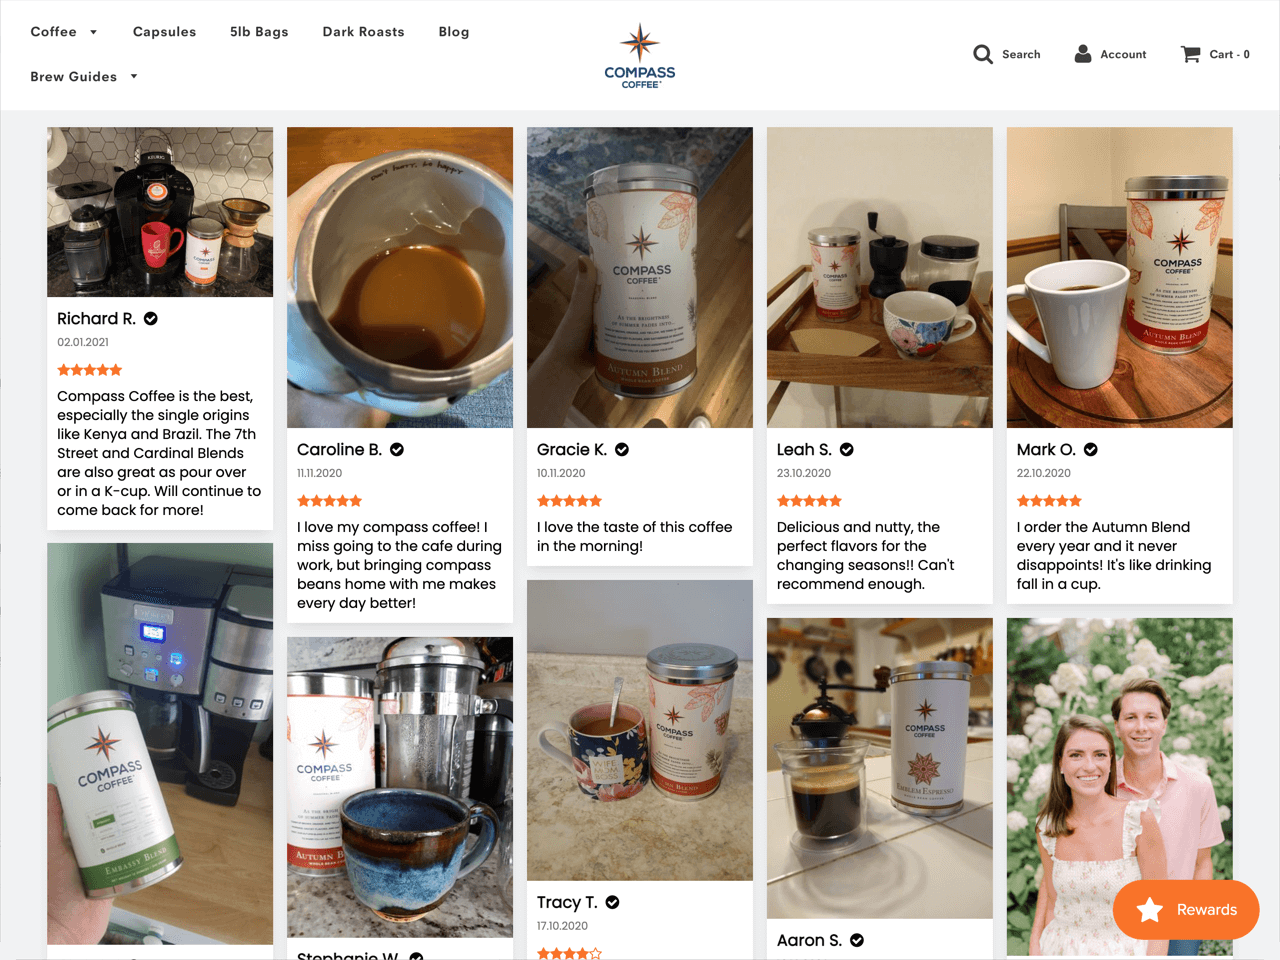 Compass Coffee features multiple customer reviews on their product pages